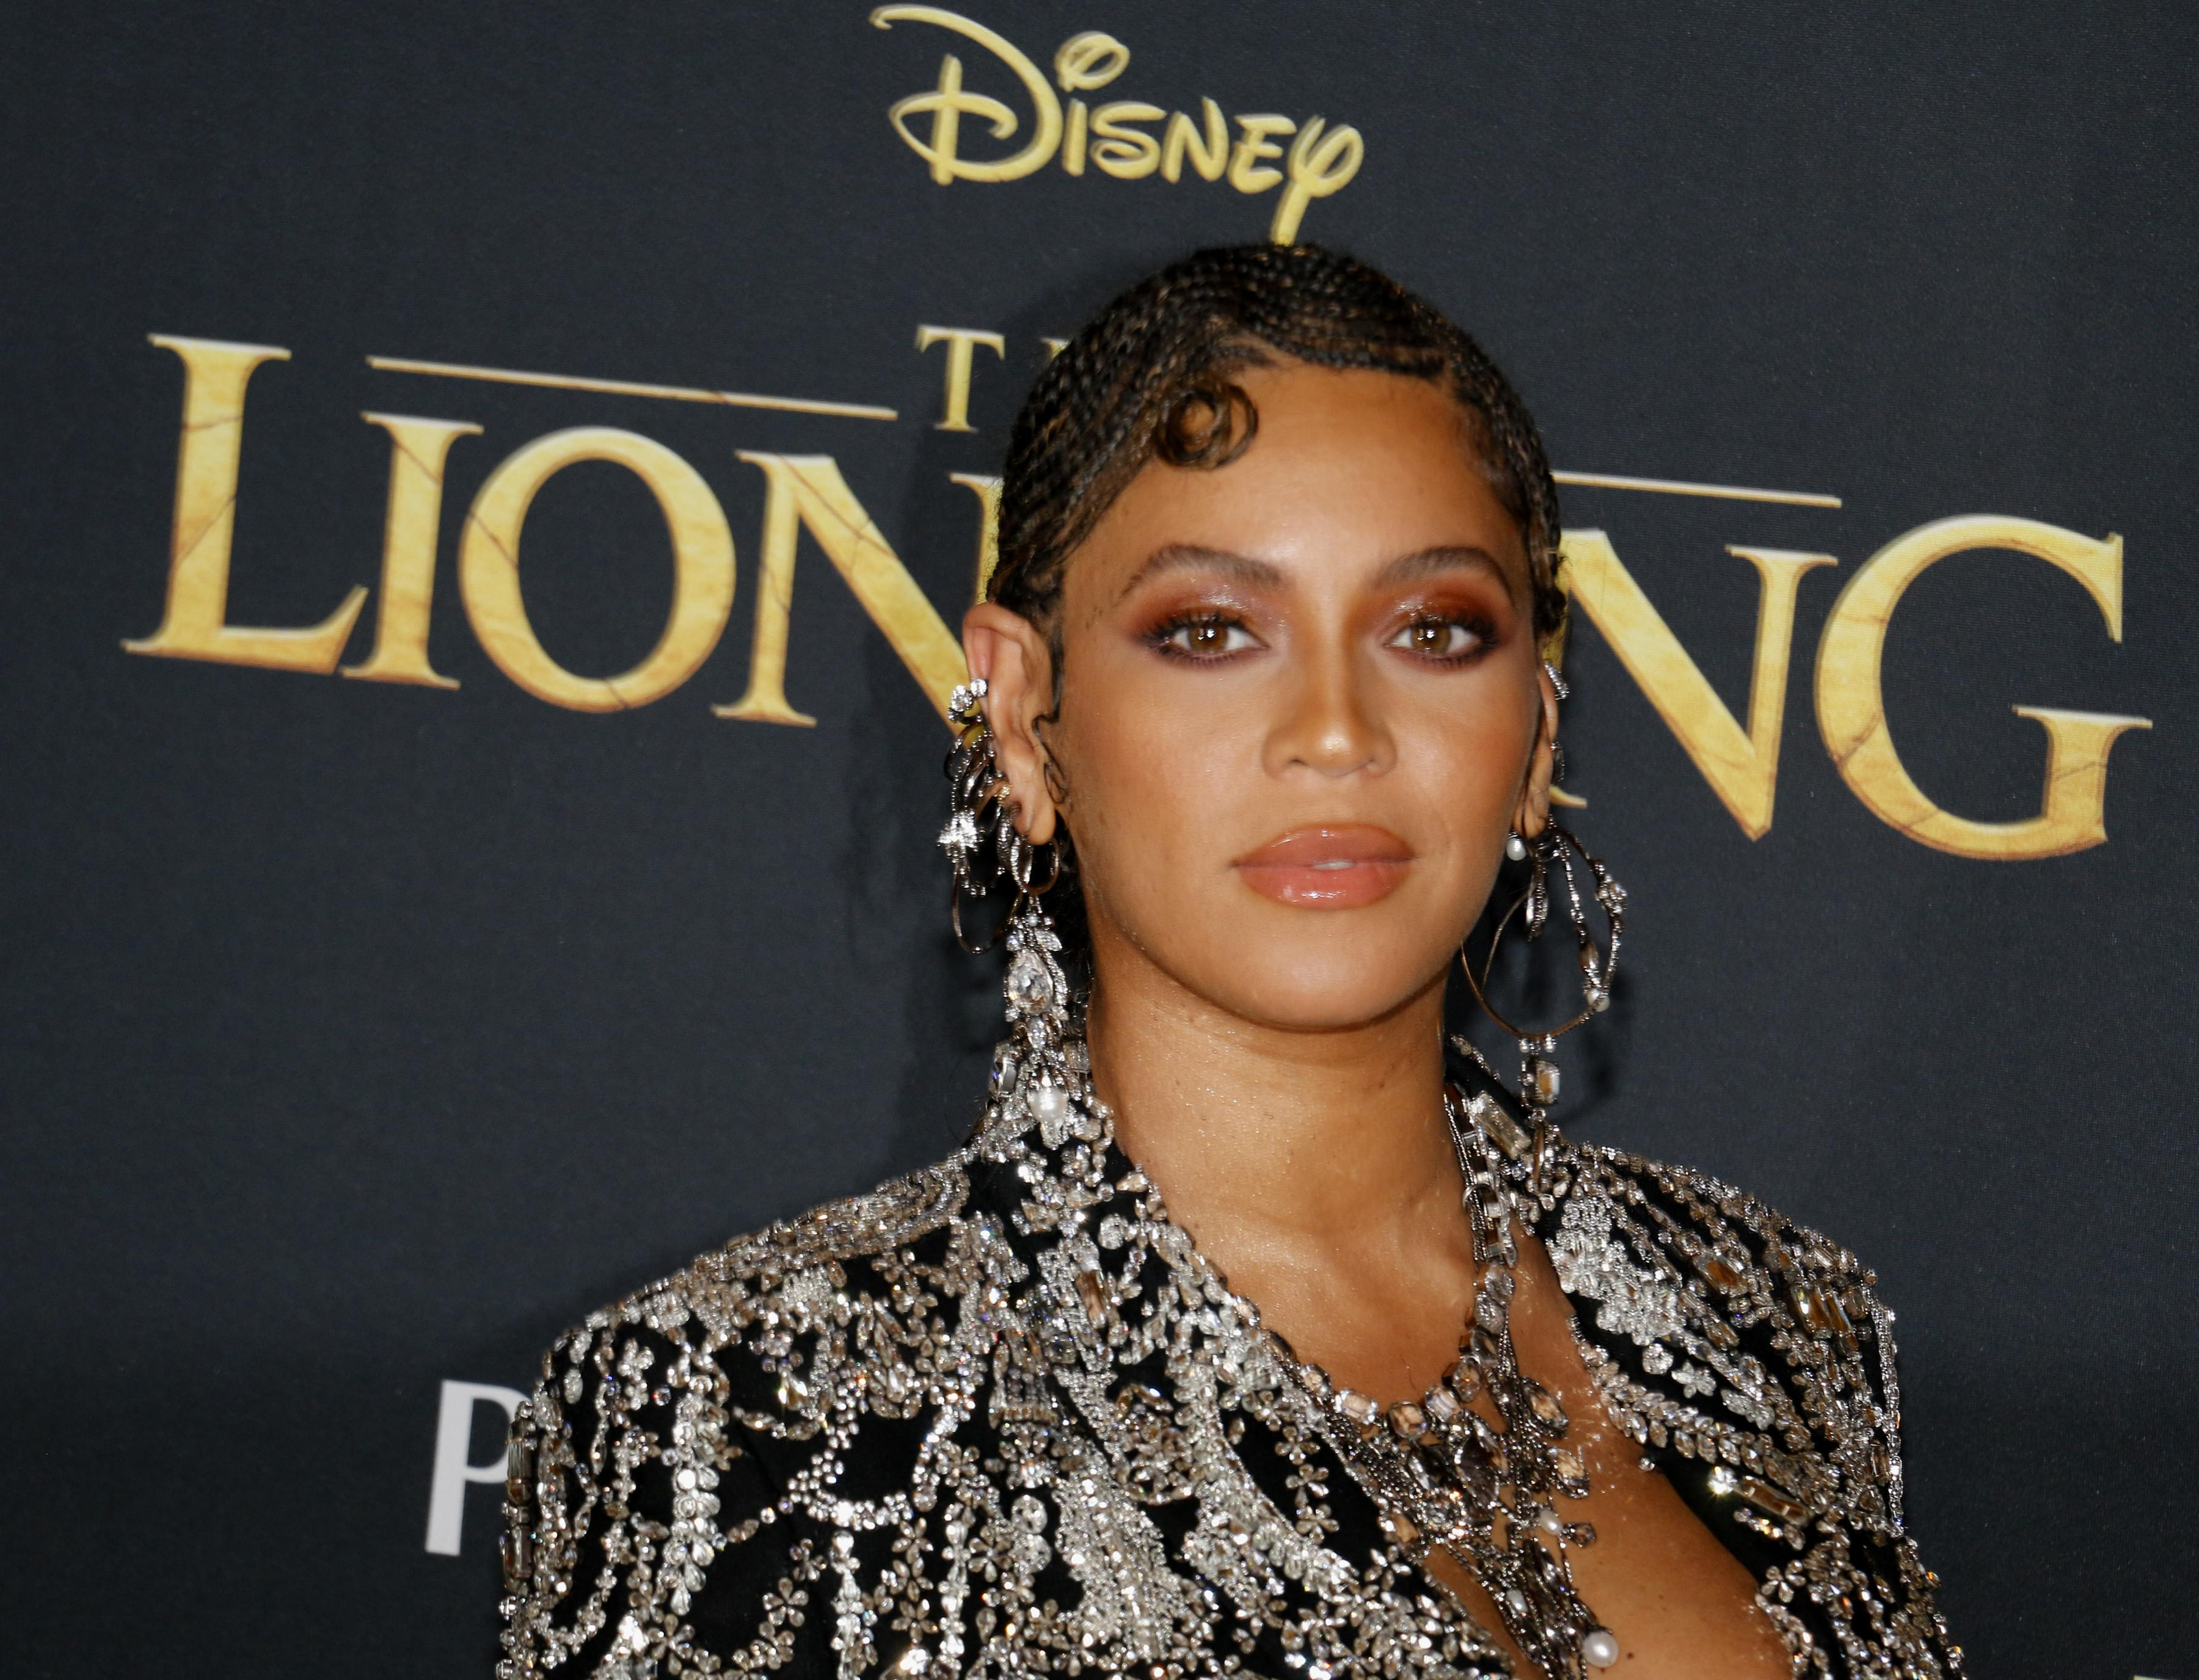 Beyonce Breaks The Record For The Most Grammy Wins By A Performing Artist